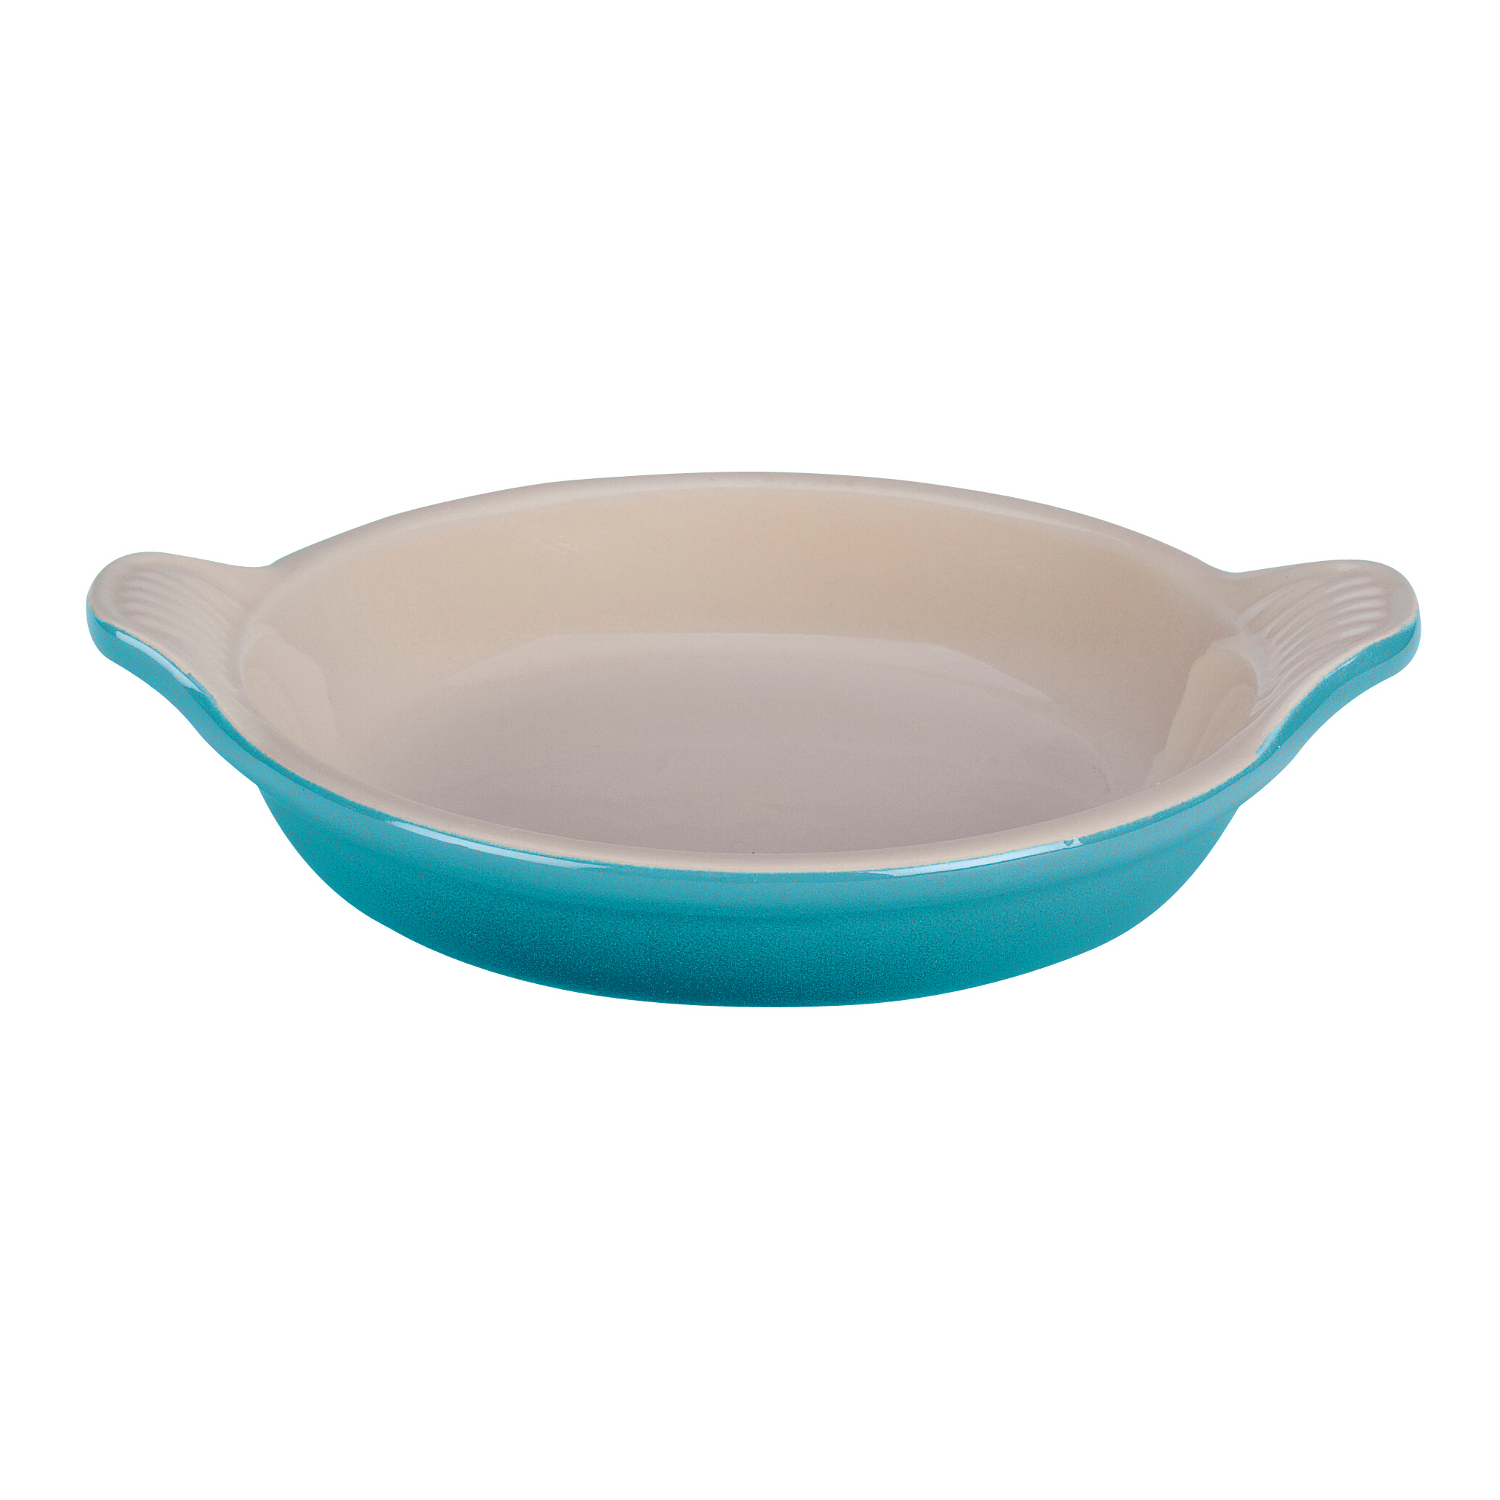 Le Creuset Caribbean Stoneware Creme Brulee Dish, 7 Ounce